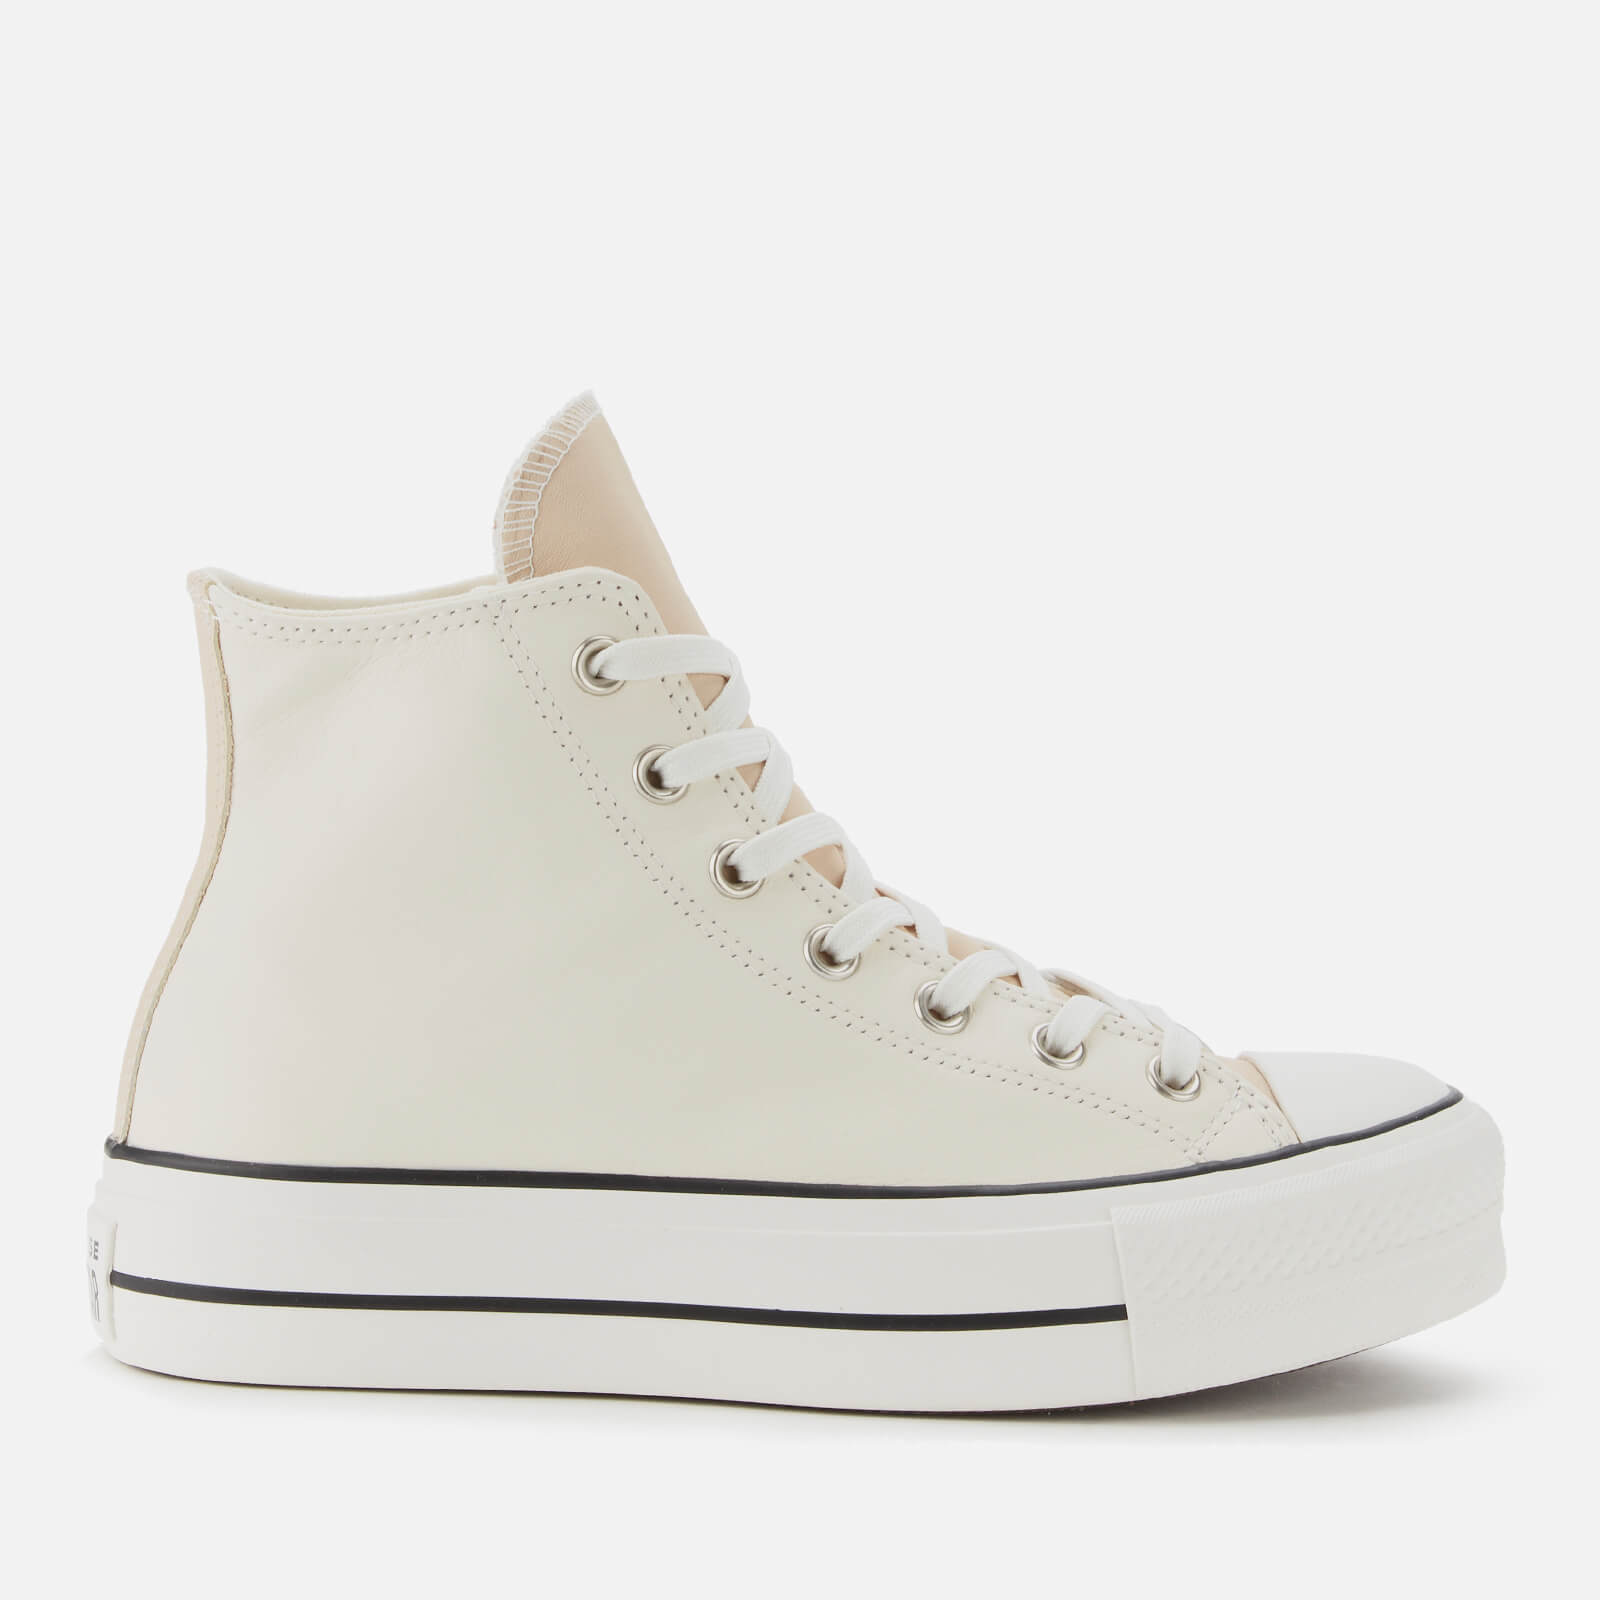 Top Trainers - Pale Putty/Farro/Egret